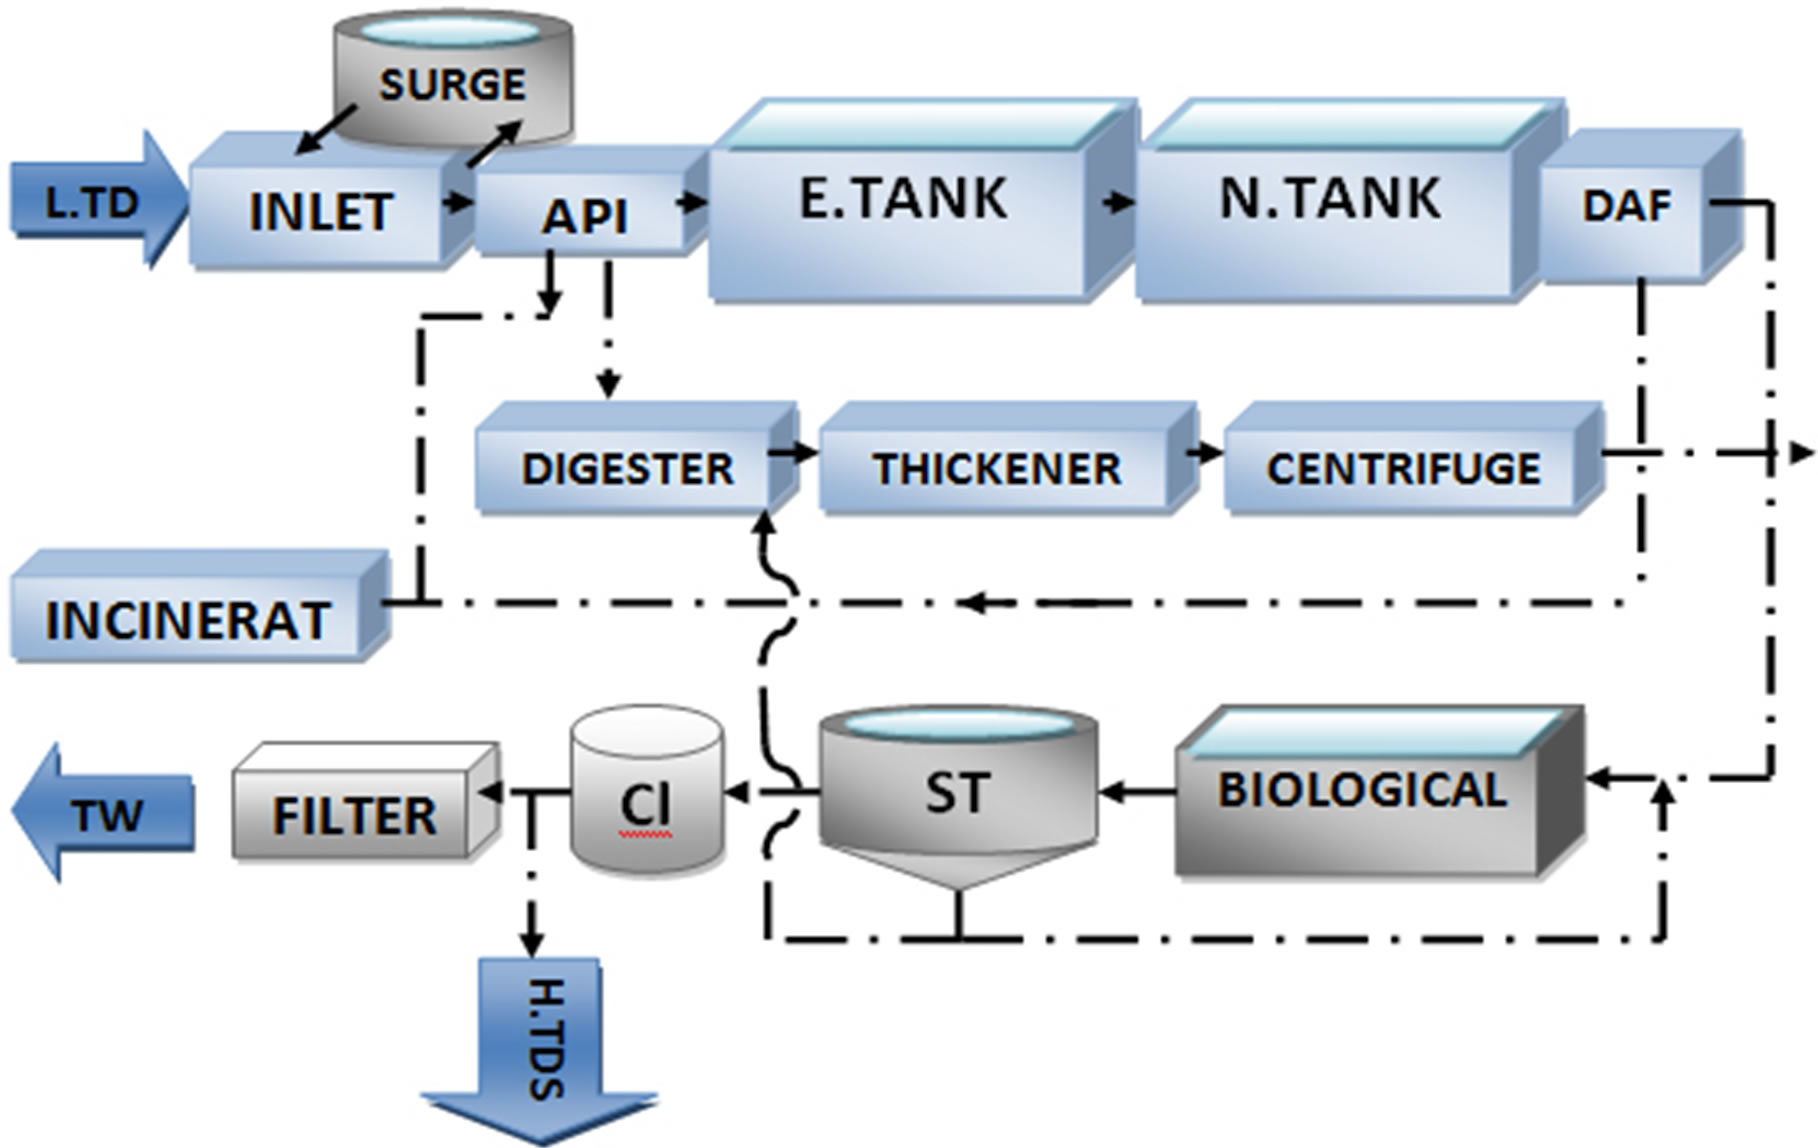 Simulation Of Low Tds And Biological Units Of Fajr Industrial Wastewater Treatment Plant Using